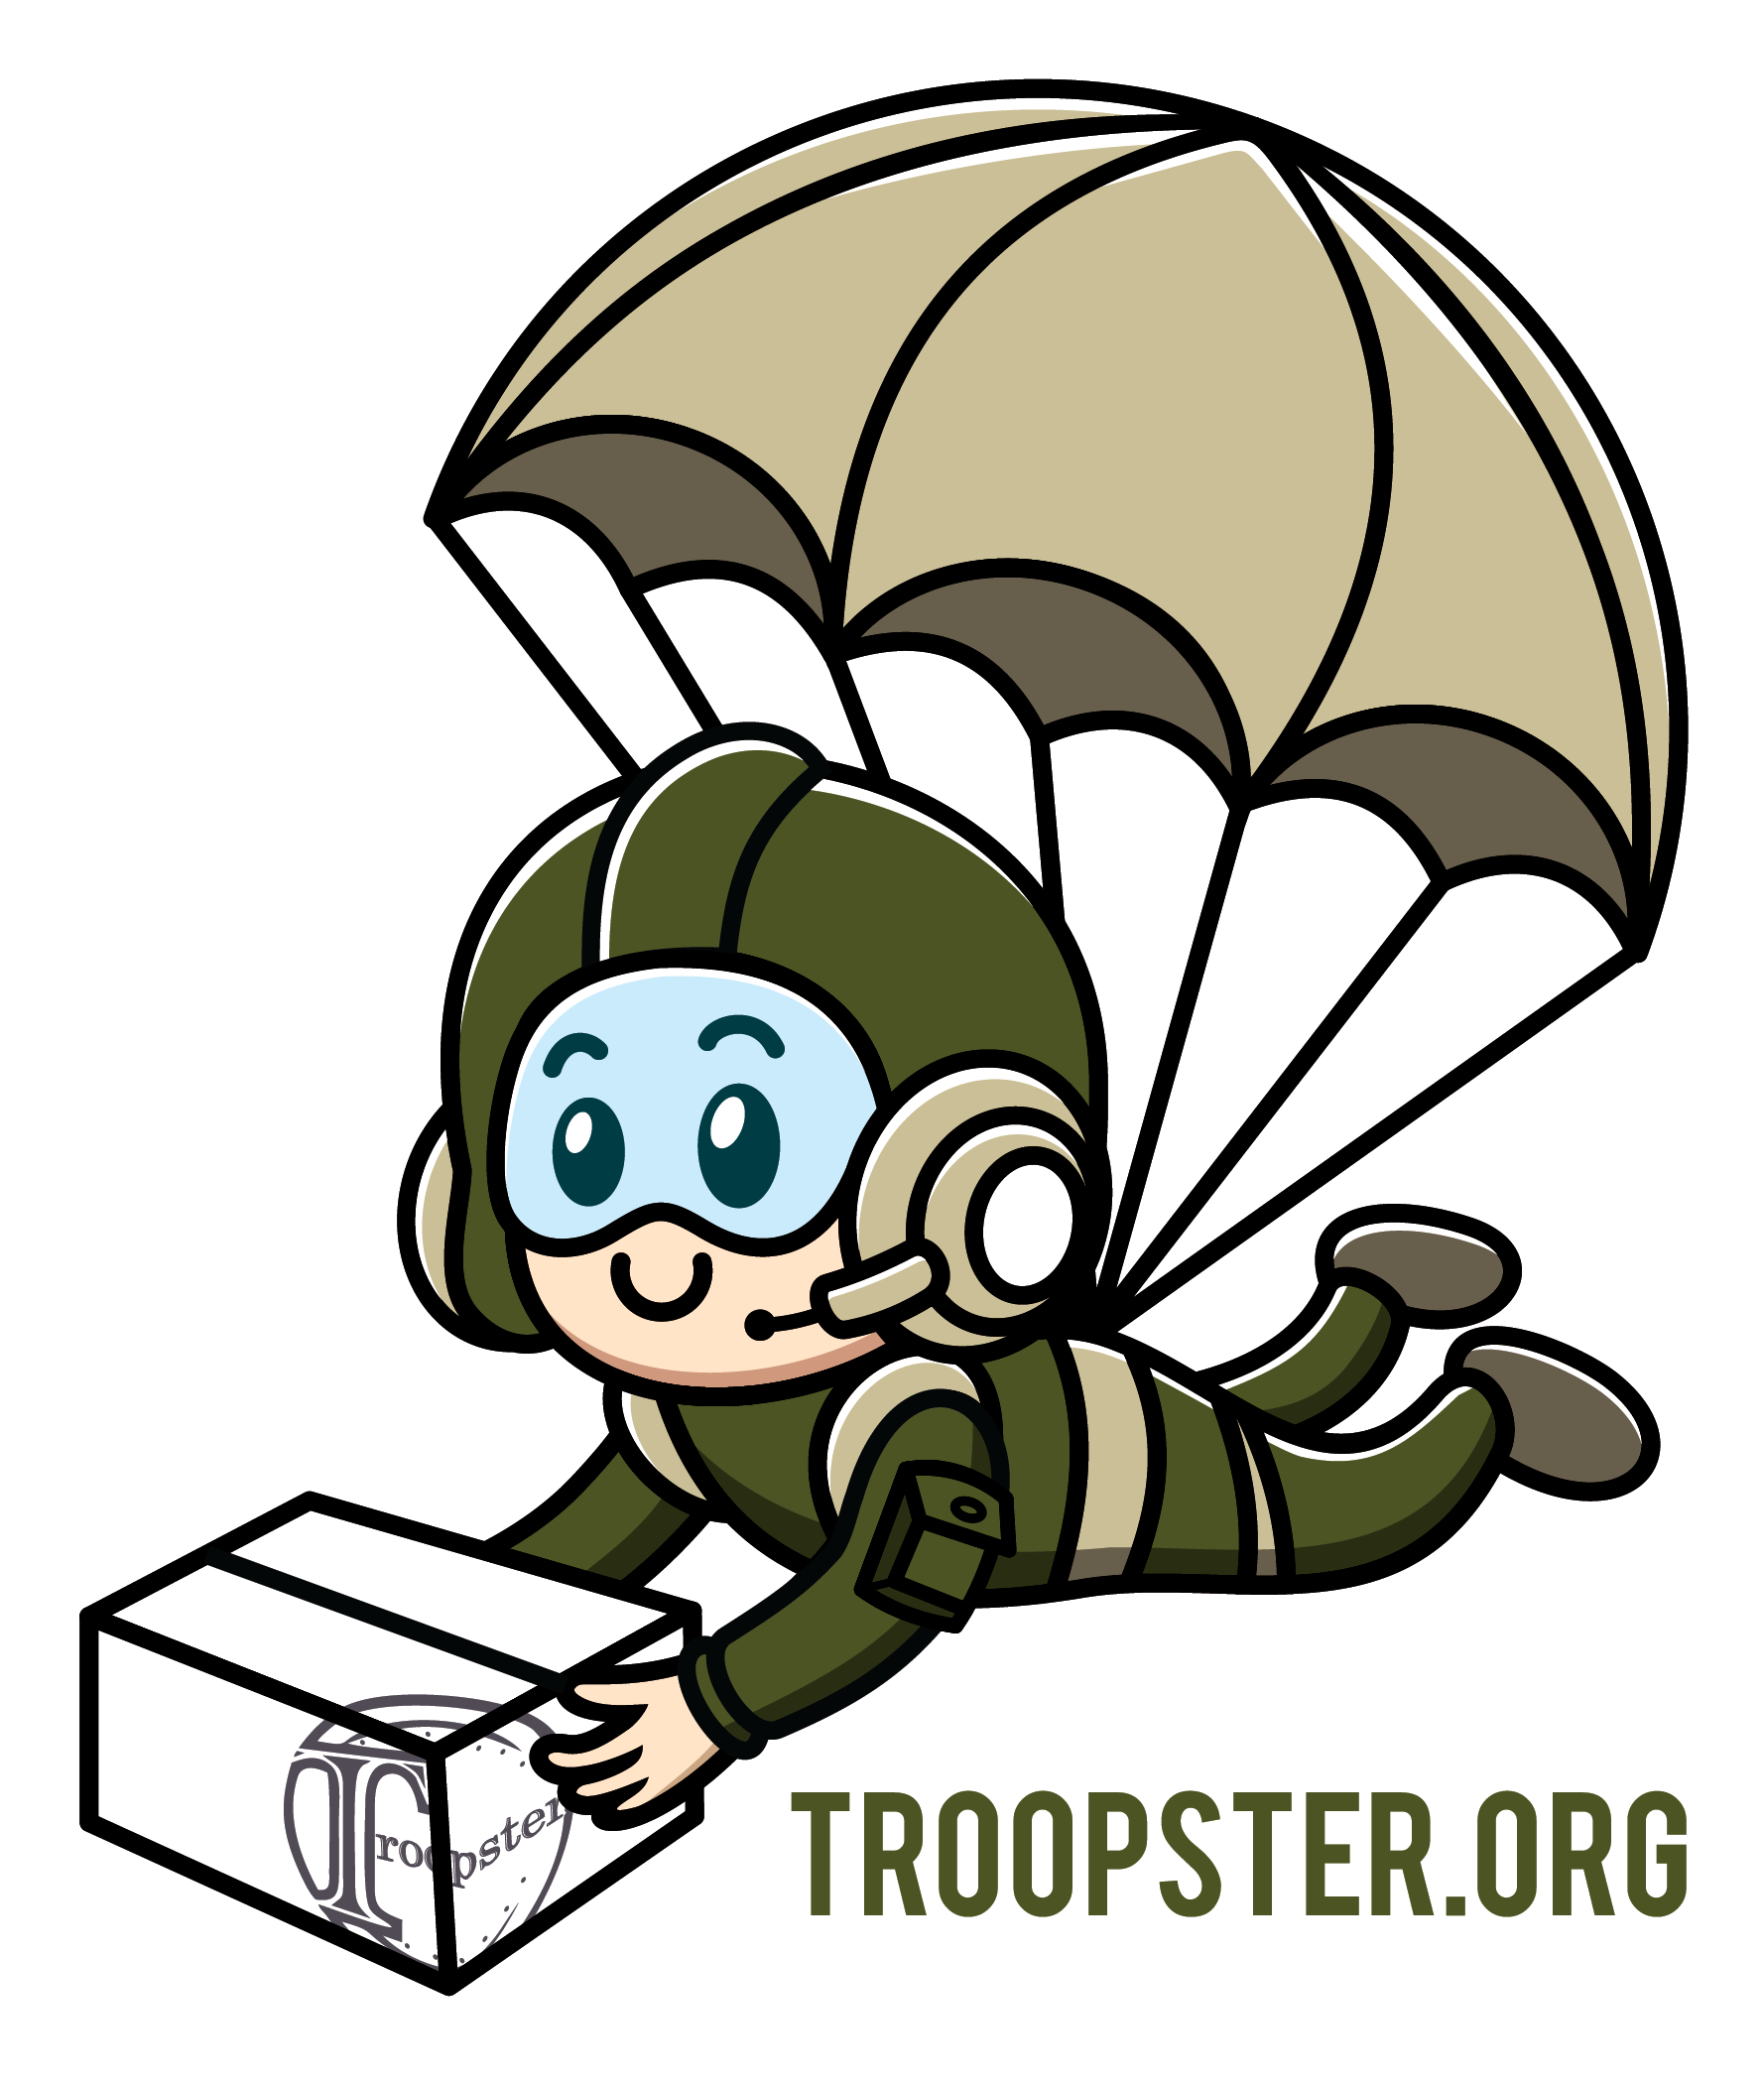 To leave the house clipart graphic stock Sending Packages Overseas? | Answers at Troopster.org | Troopster graphic stock